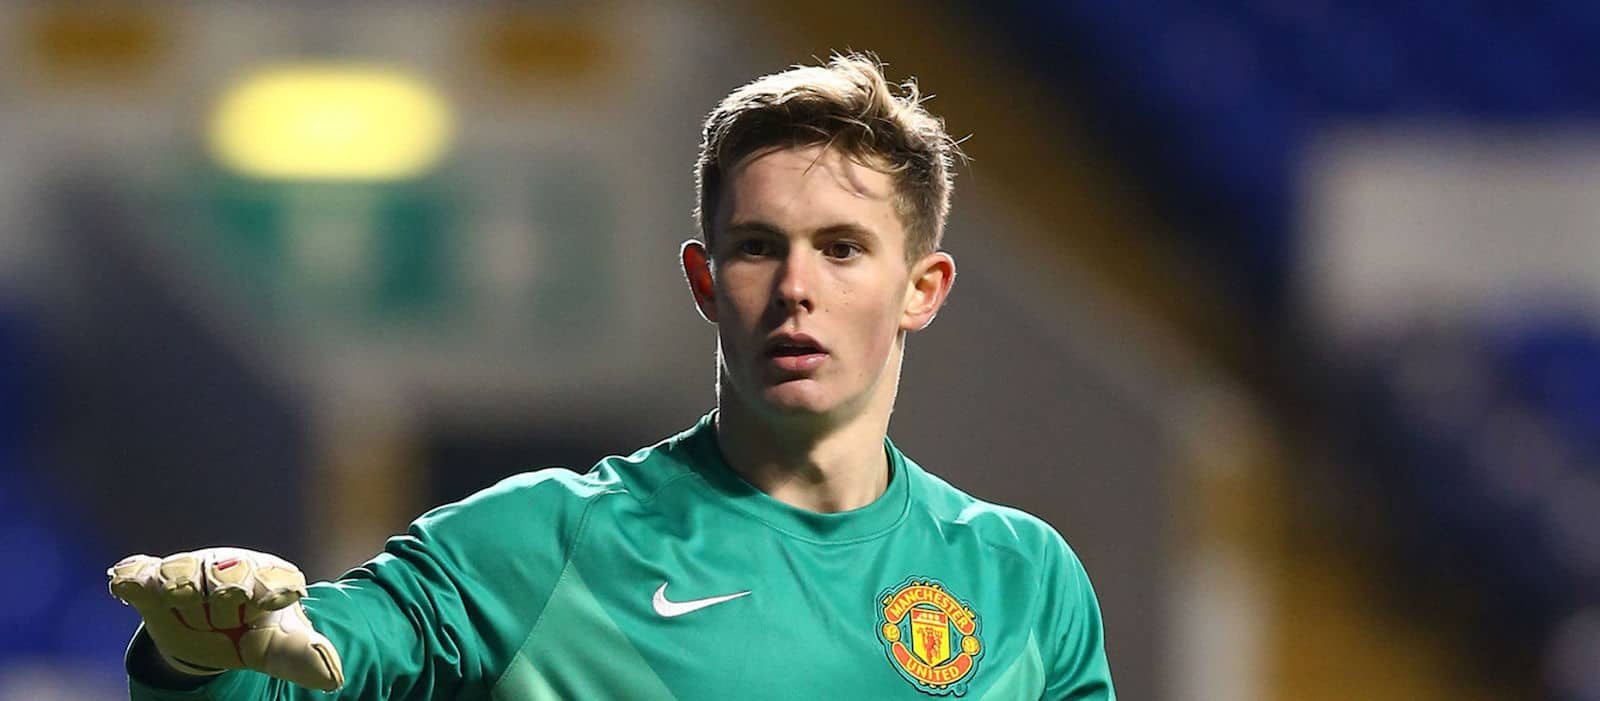 Shrewsbury have signed Manchester United goalkeeper Dean Henderson on loan